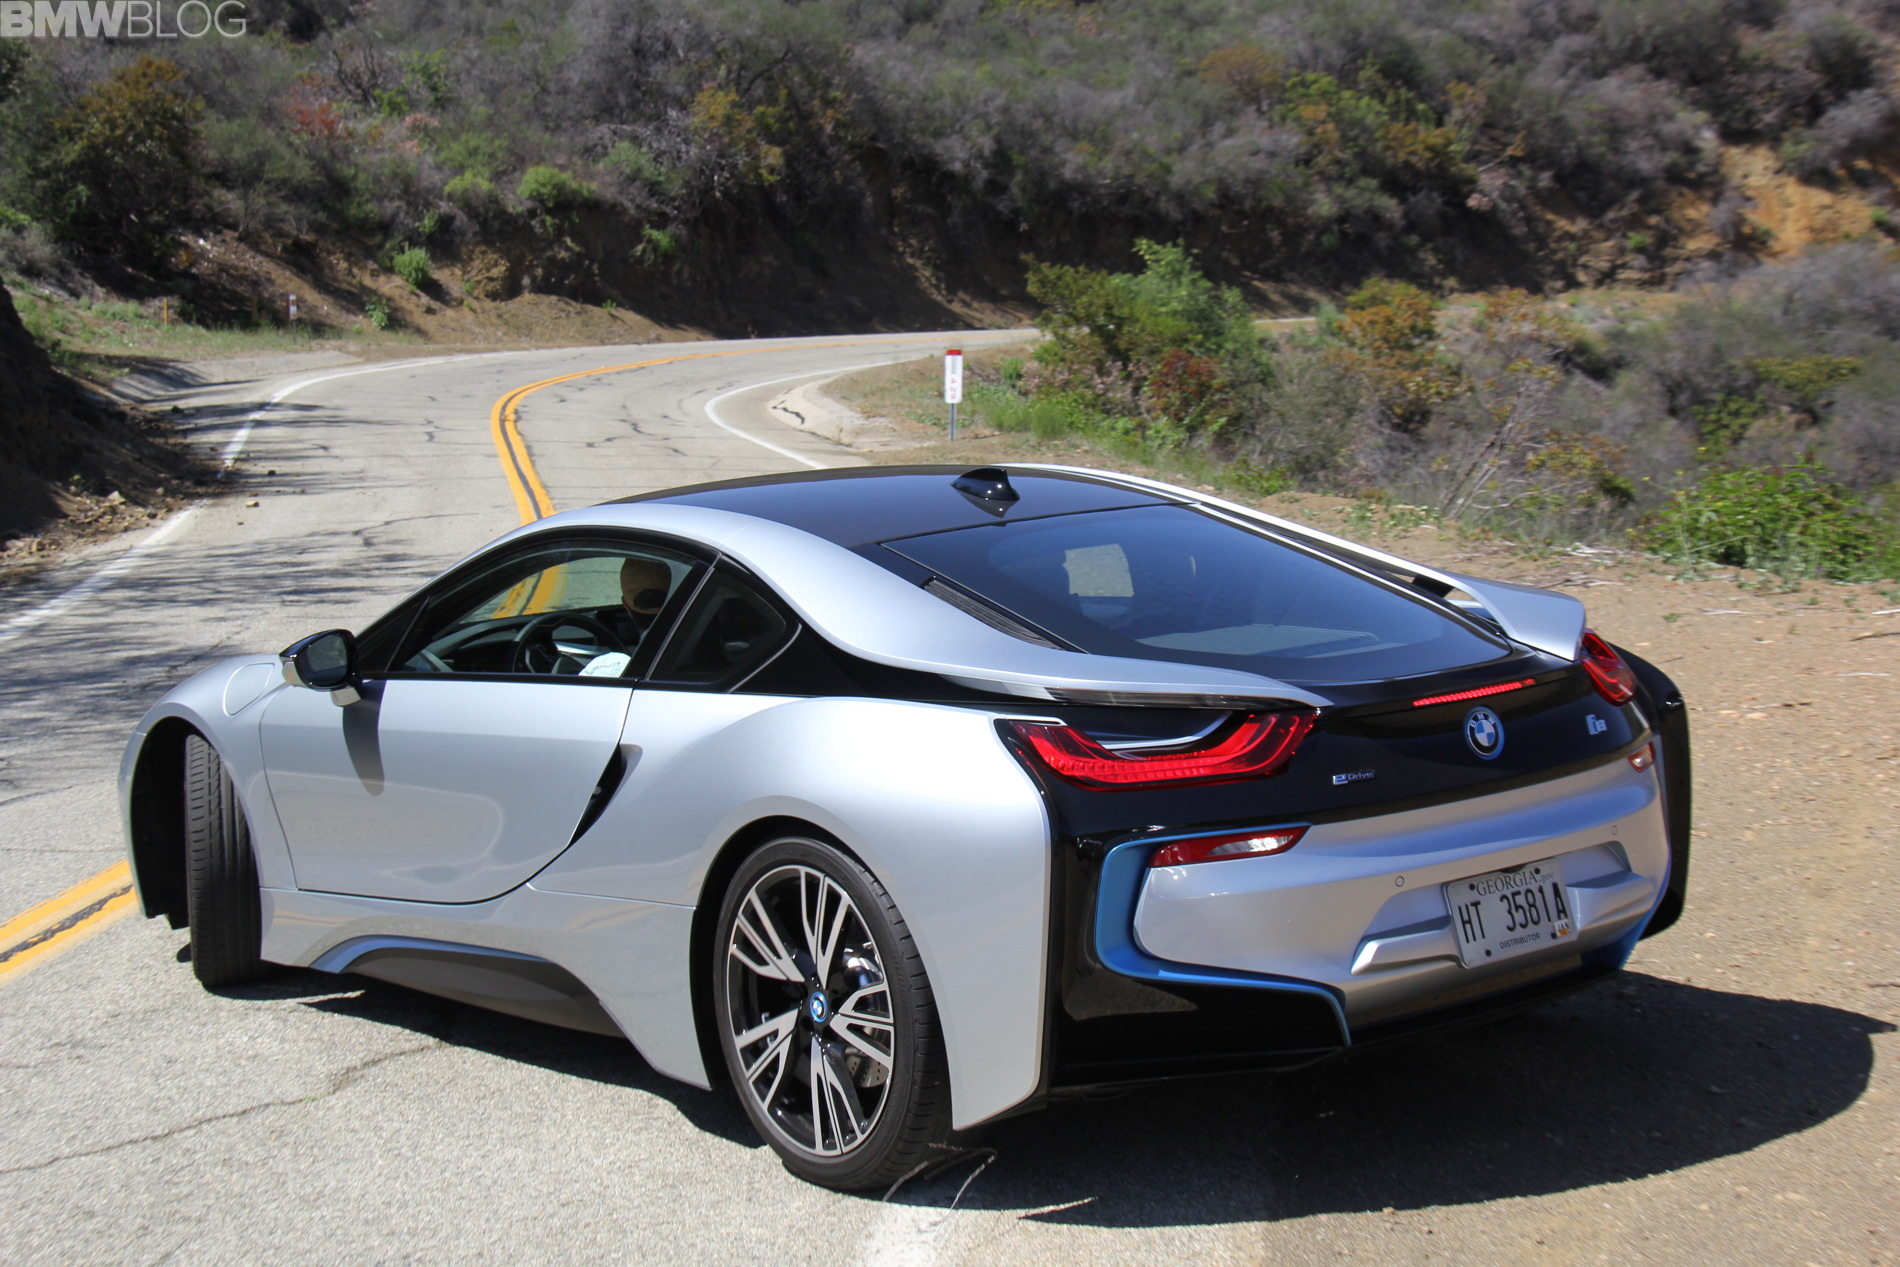 2015 bmw i8 drive review bmwblog 71